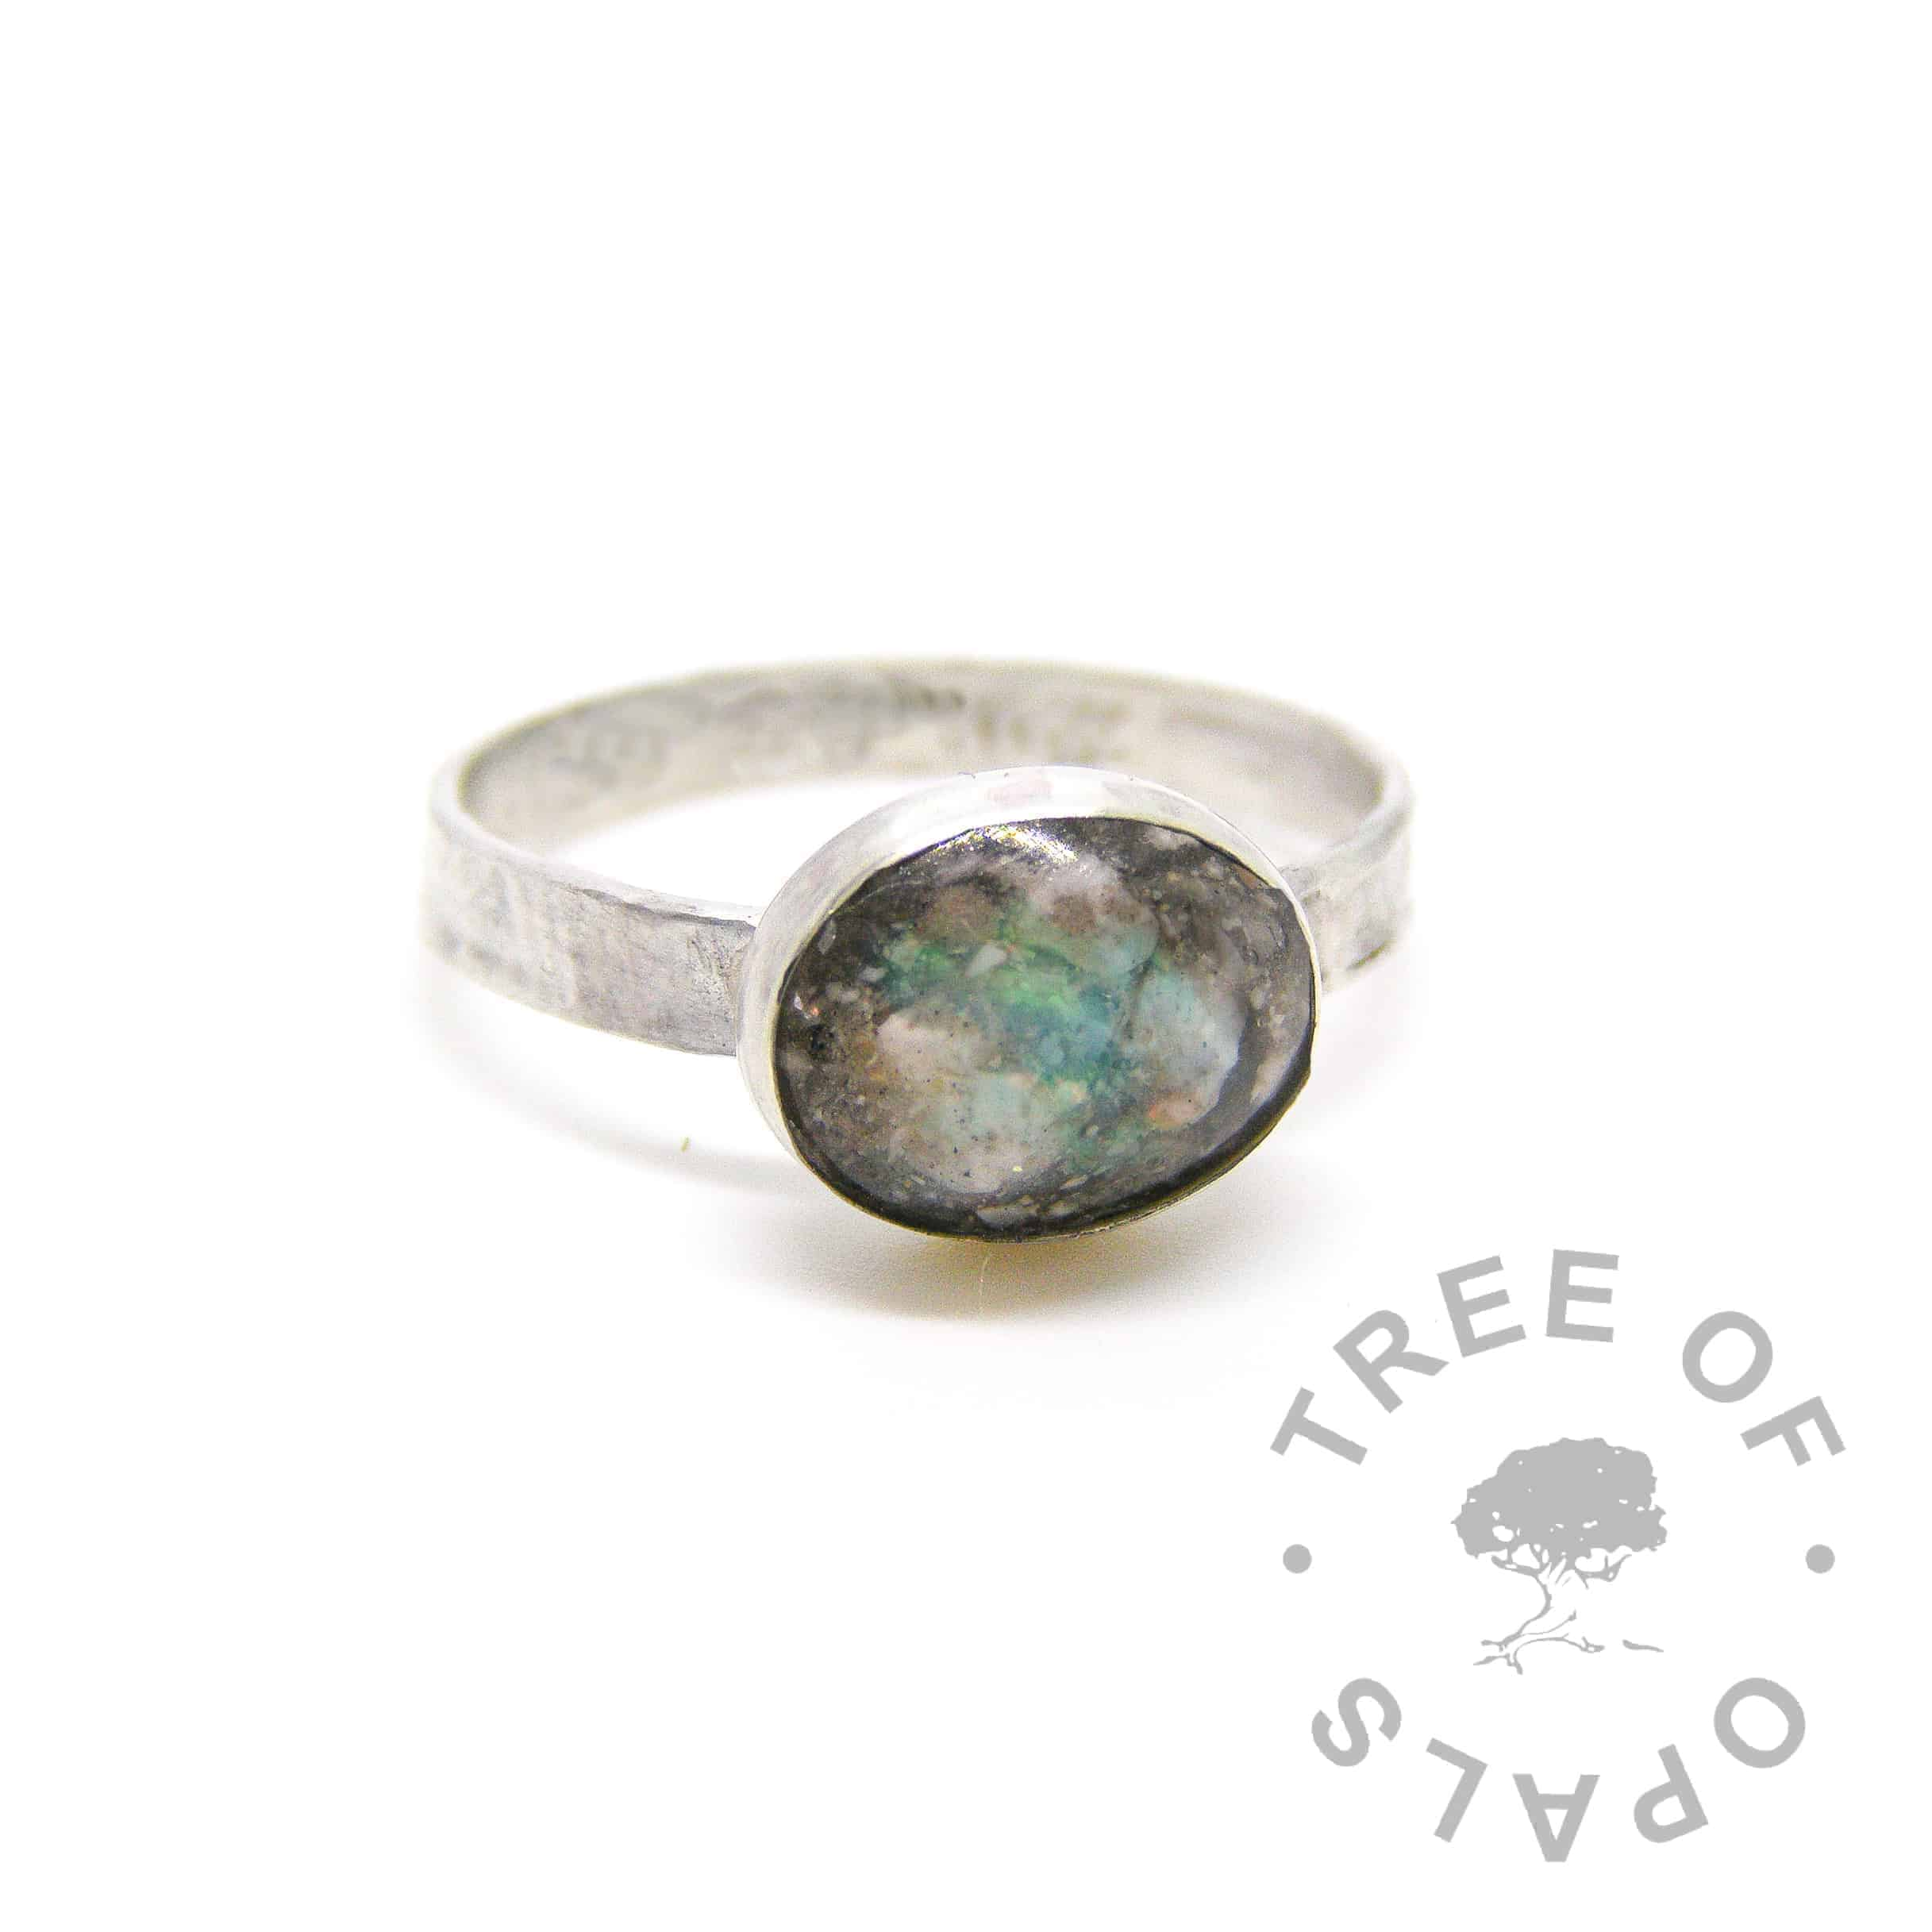 cremation ash ring with real opal October birthstone on textured band